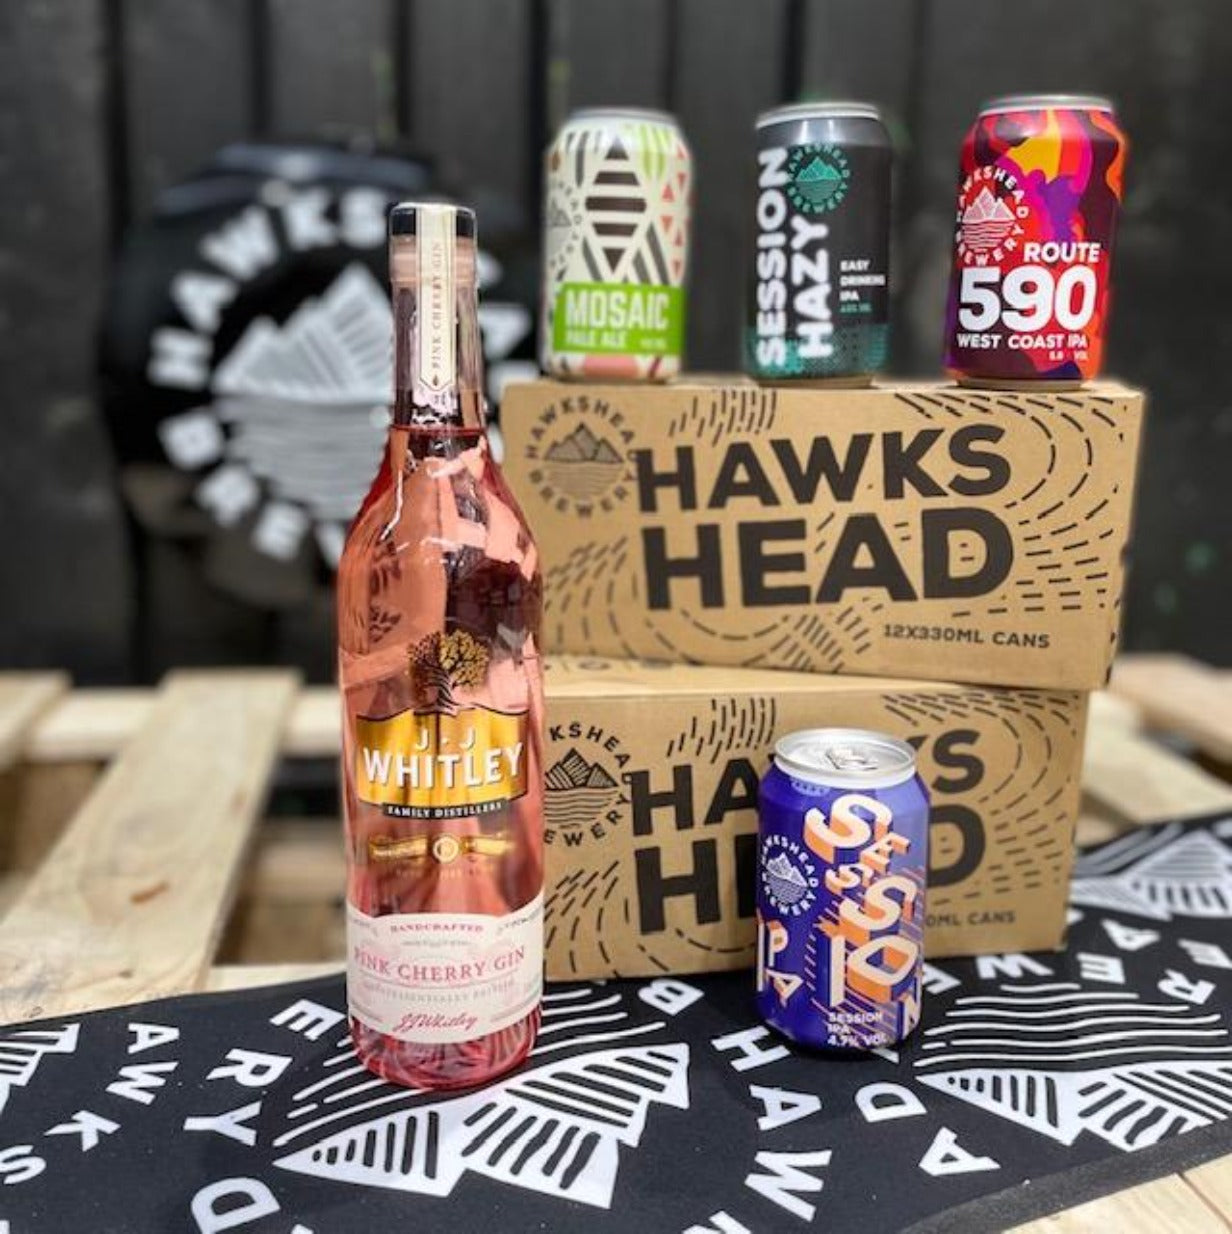 Hawkshead Brewery - 2 x Mixed Case 330ml Cans and a JJ Whitley  Pink Cherry Gin 70cl